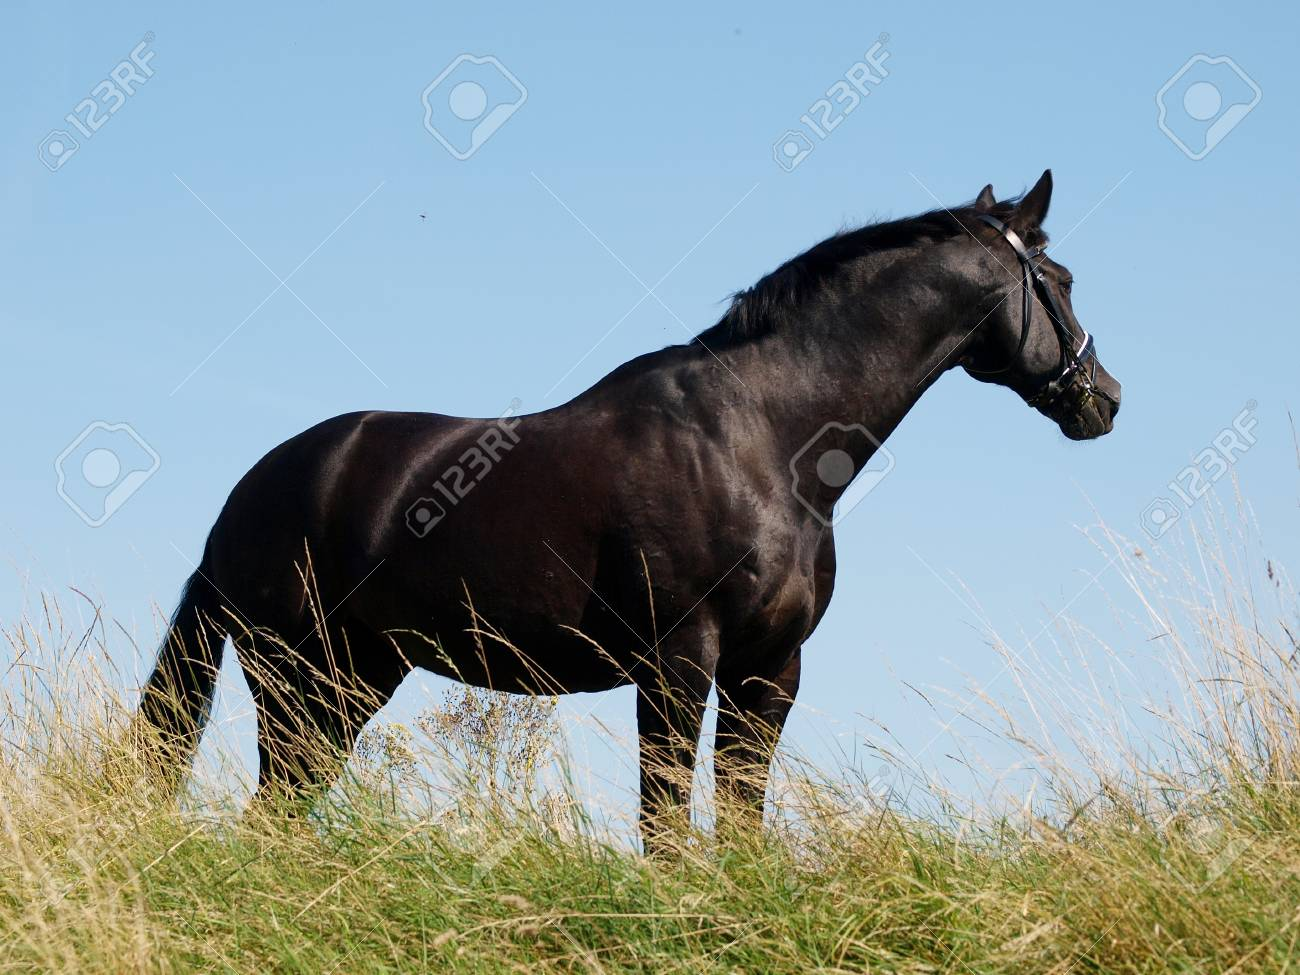 A Beautiful Black Horse Stands Up On The Top Of A Hill Stock Photo Picture And Royalty Free Image Image 18024091